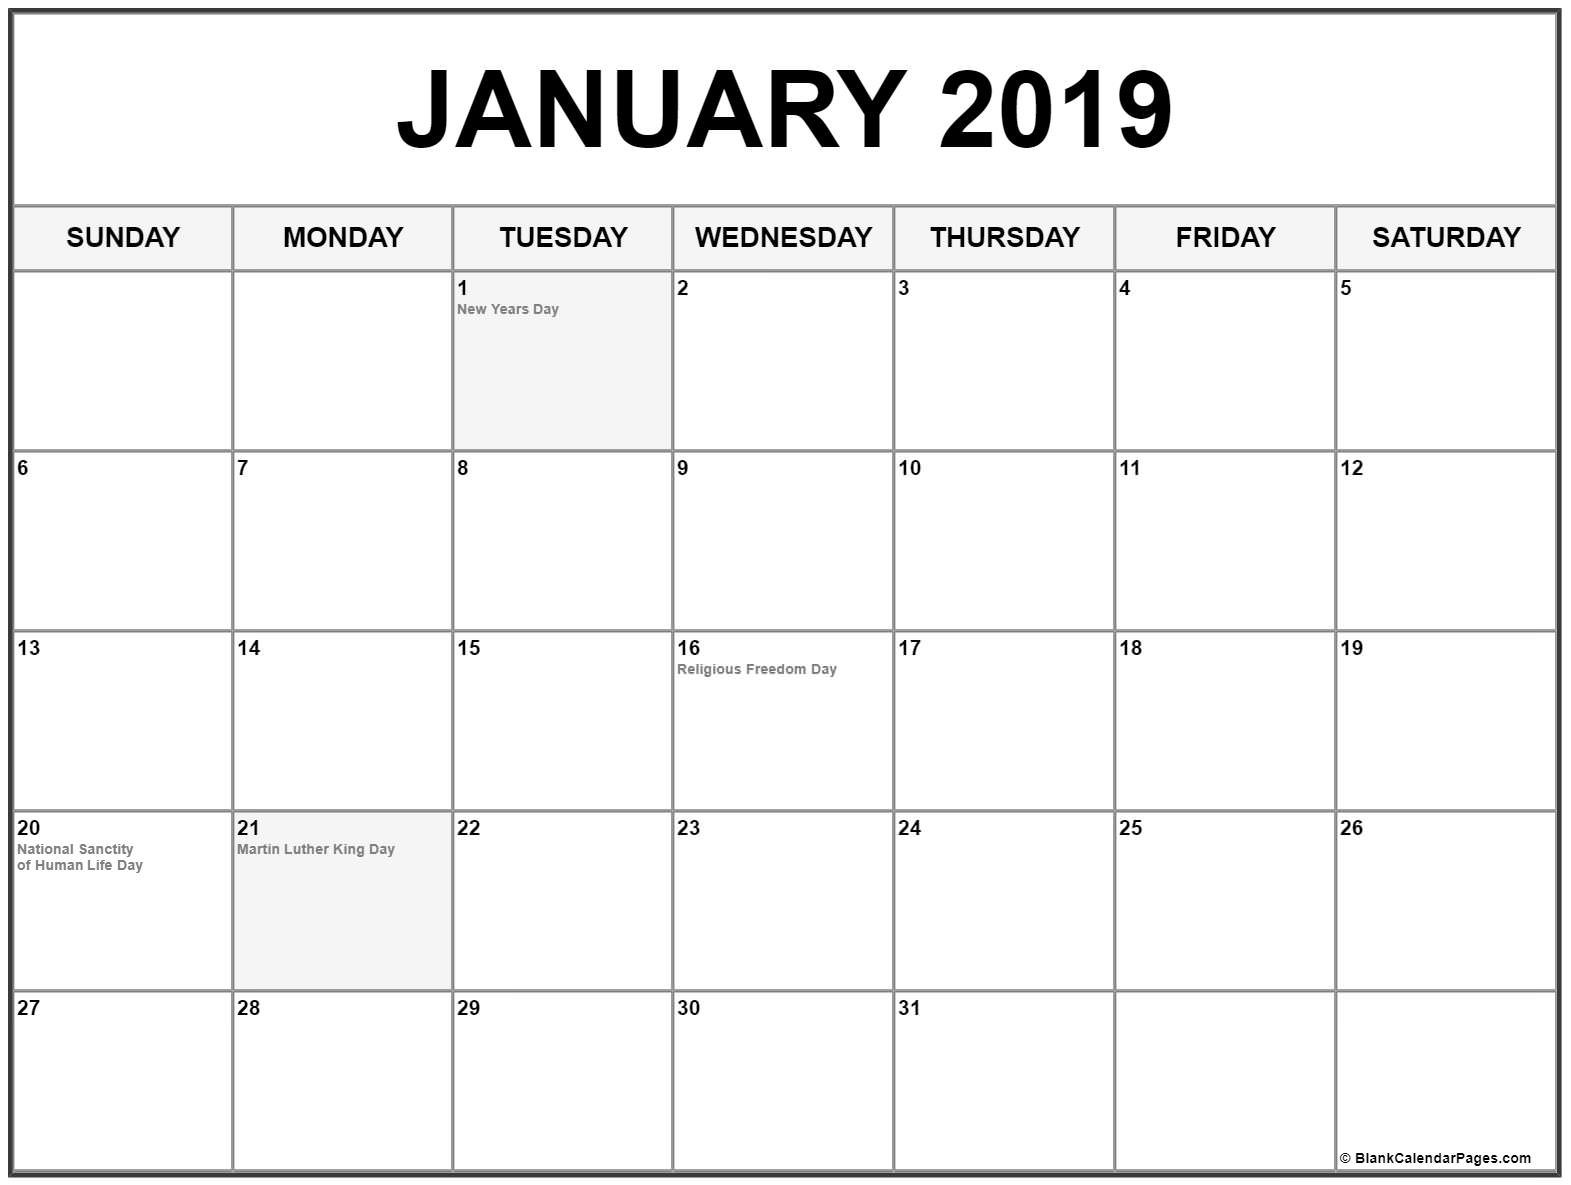 Collection Of January 2019 Calendars With Holidays Calendar 2019 With Holidays Usa